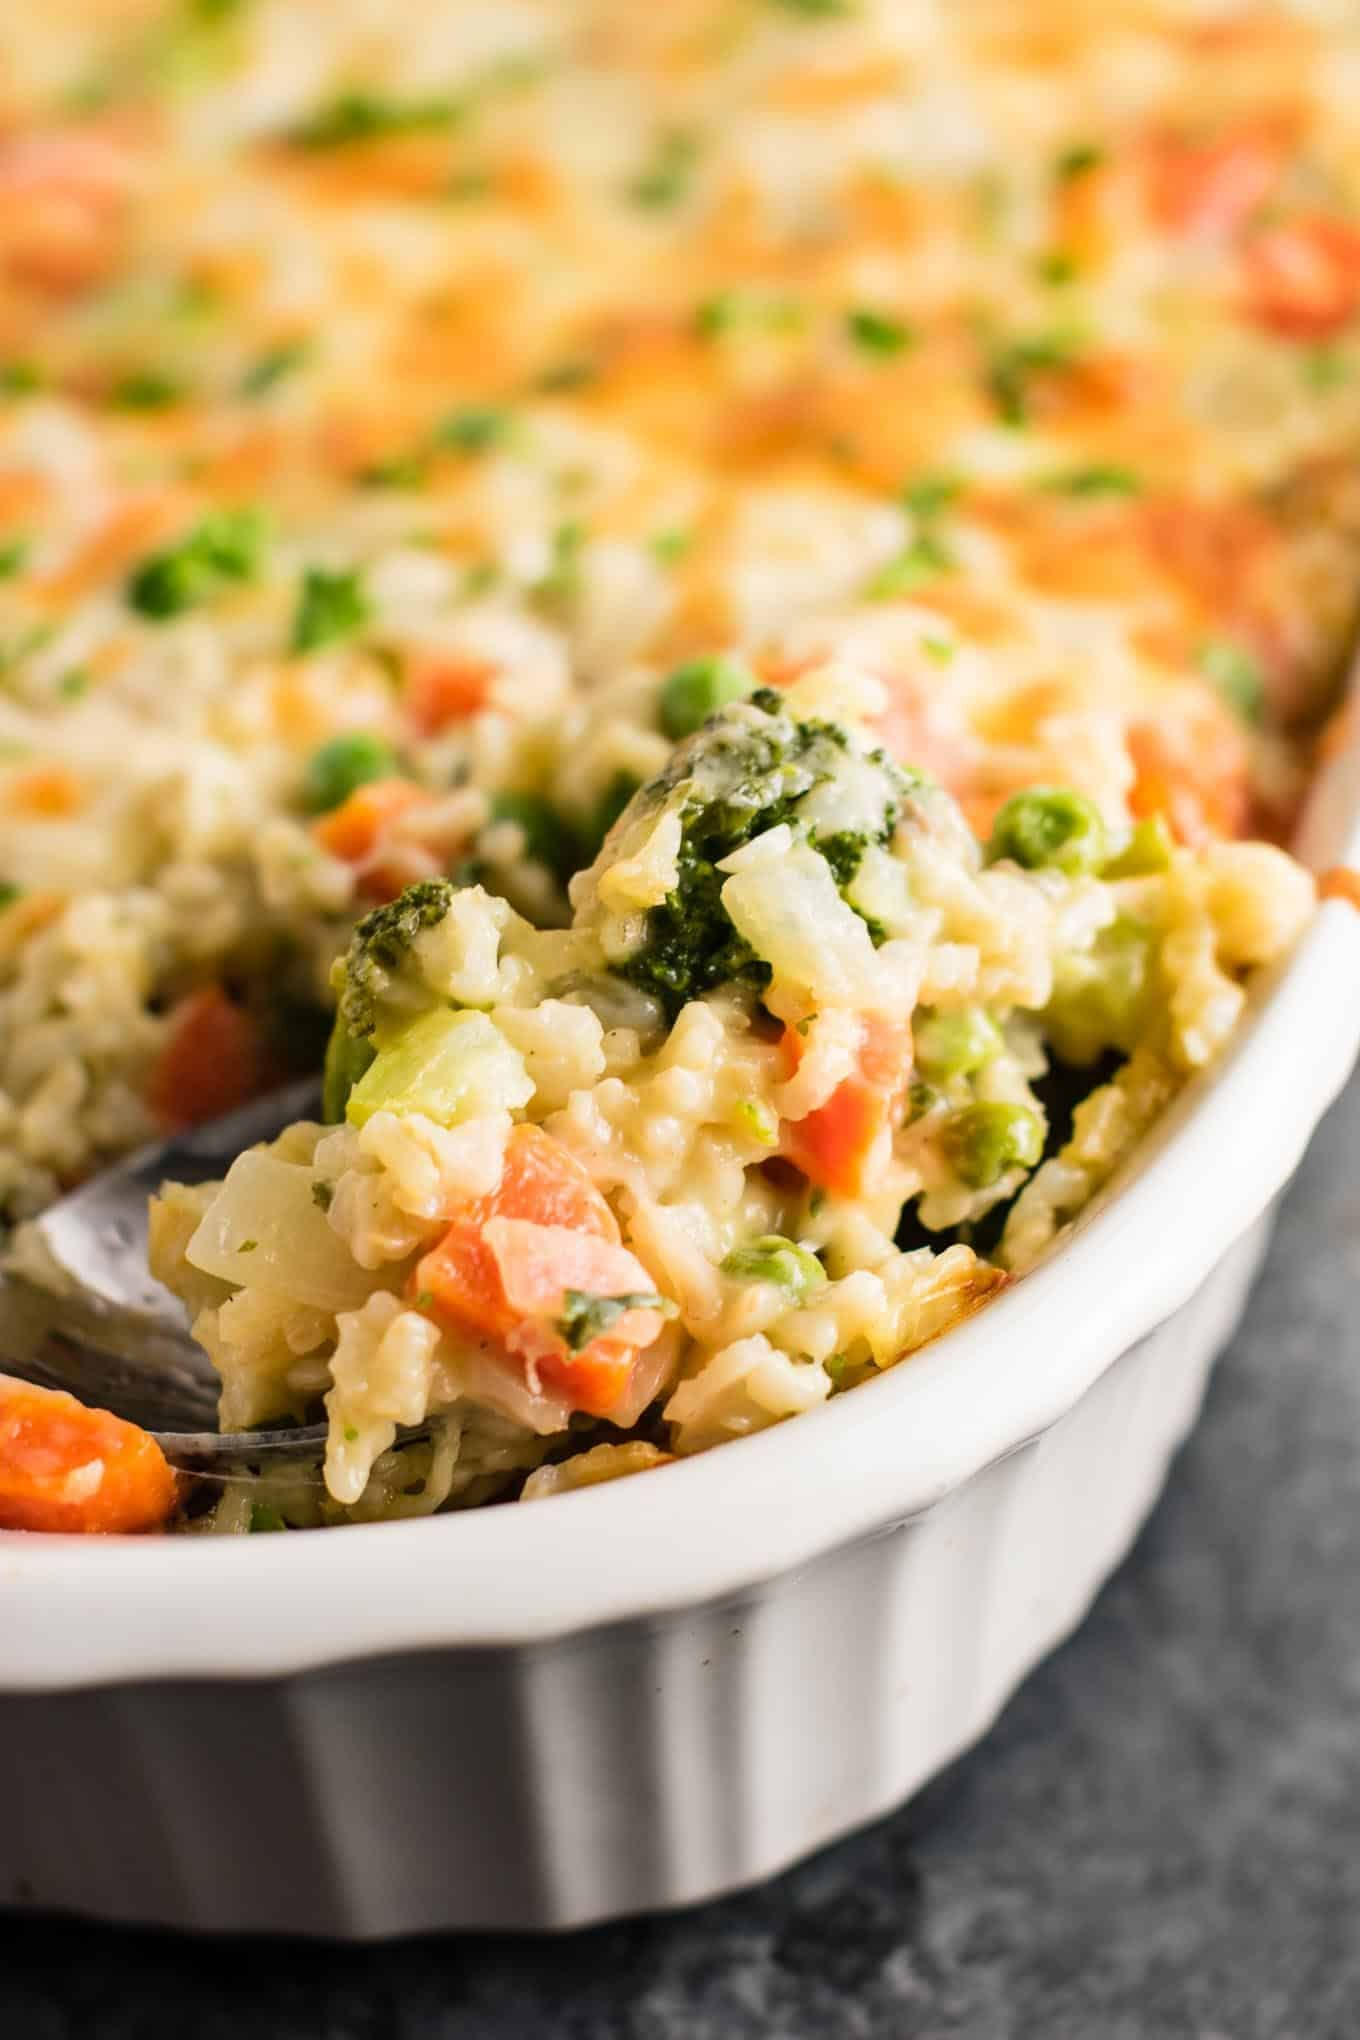 Cheesy delicious rice and vegetable casserole recipe made